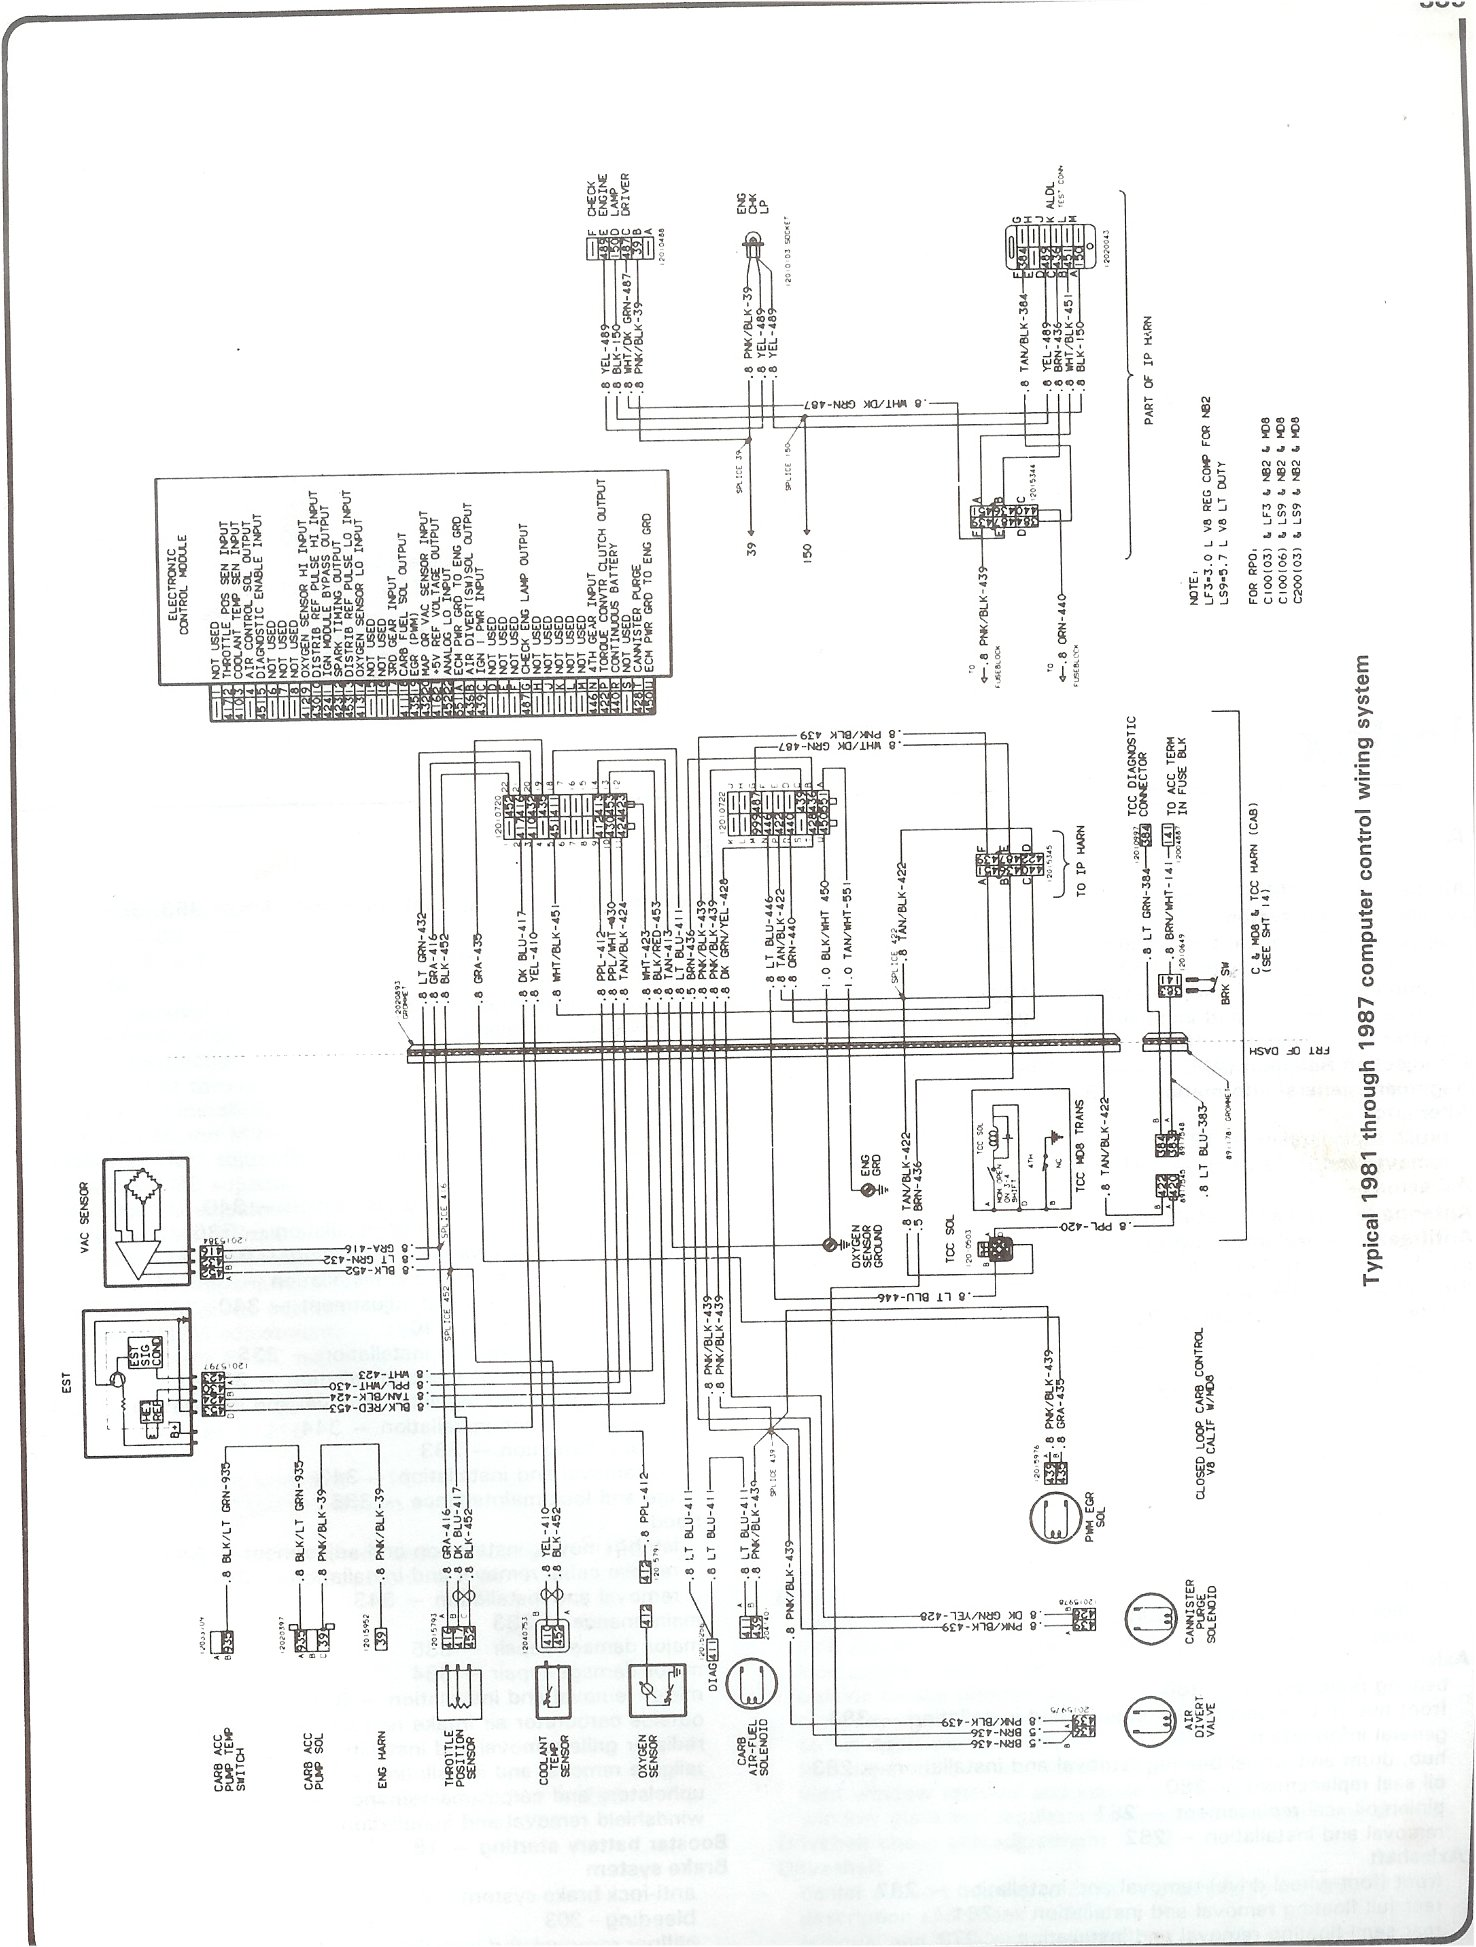 36278 Electrical Diagrams Chevy Only 2 on 2002 chevy blazer fuse box diagram